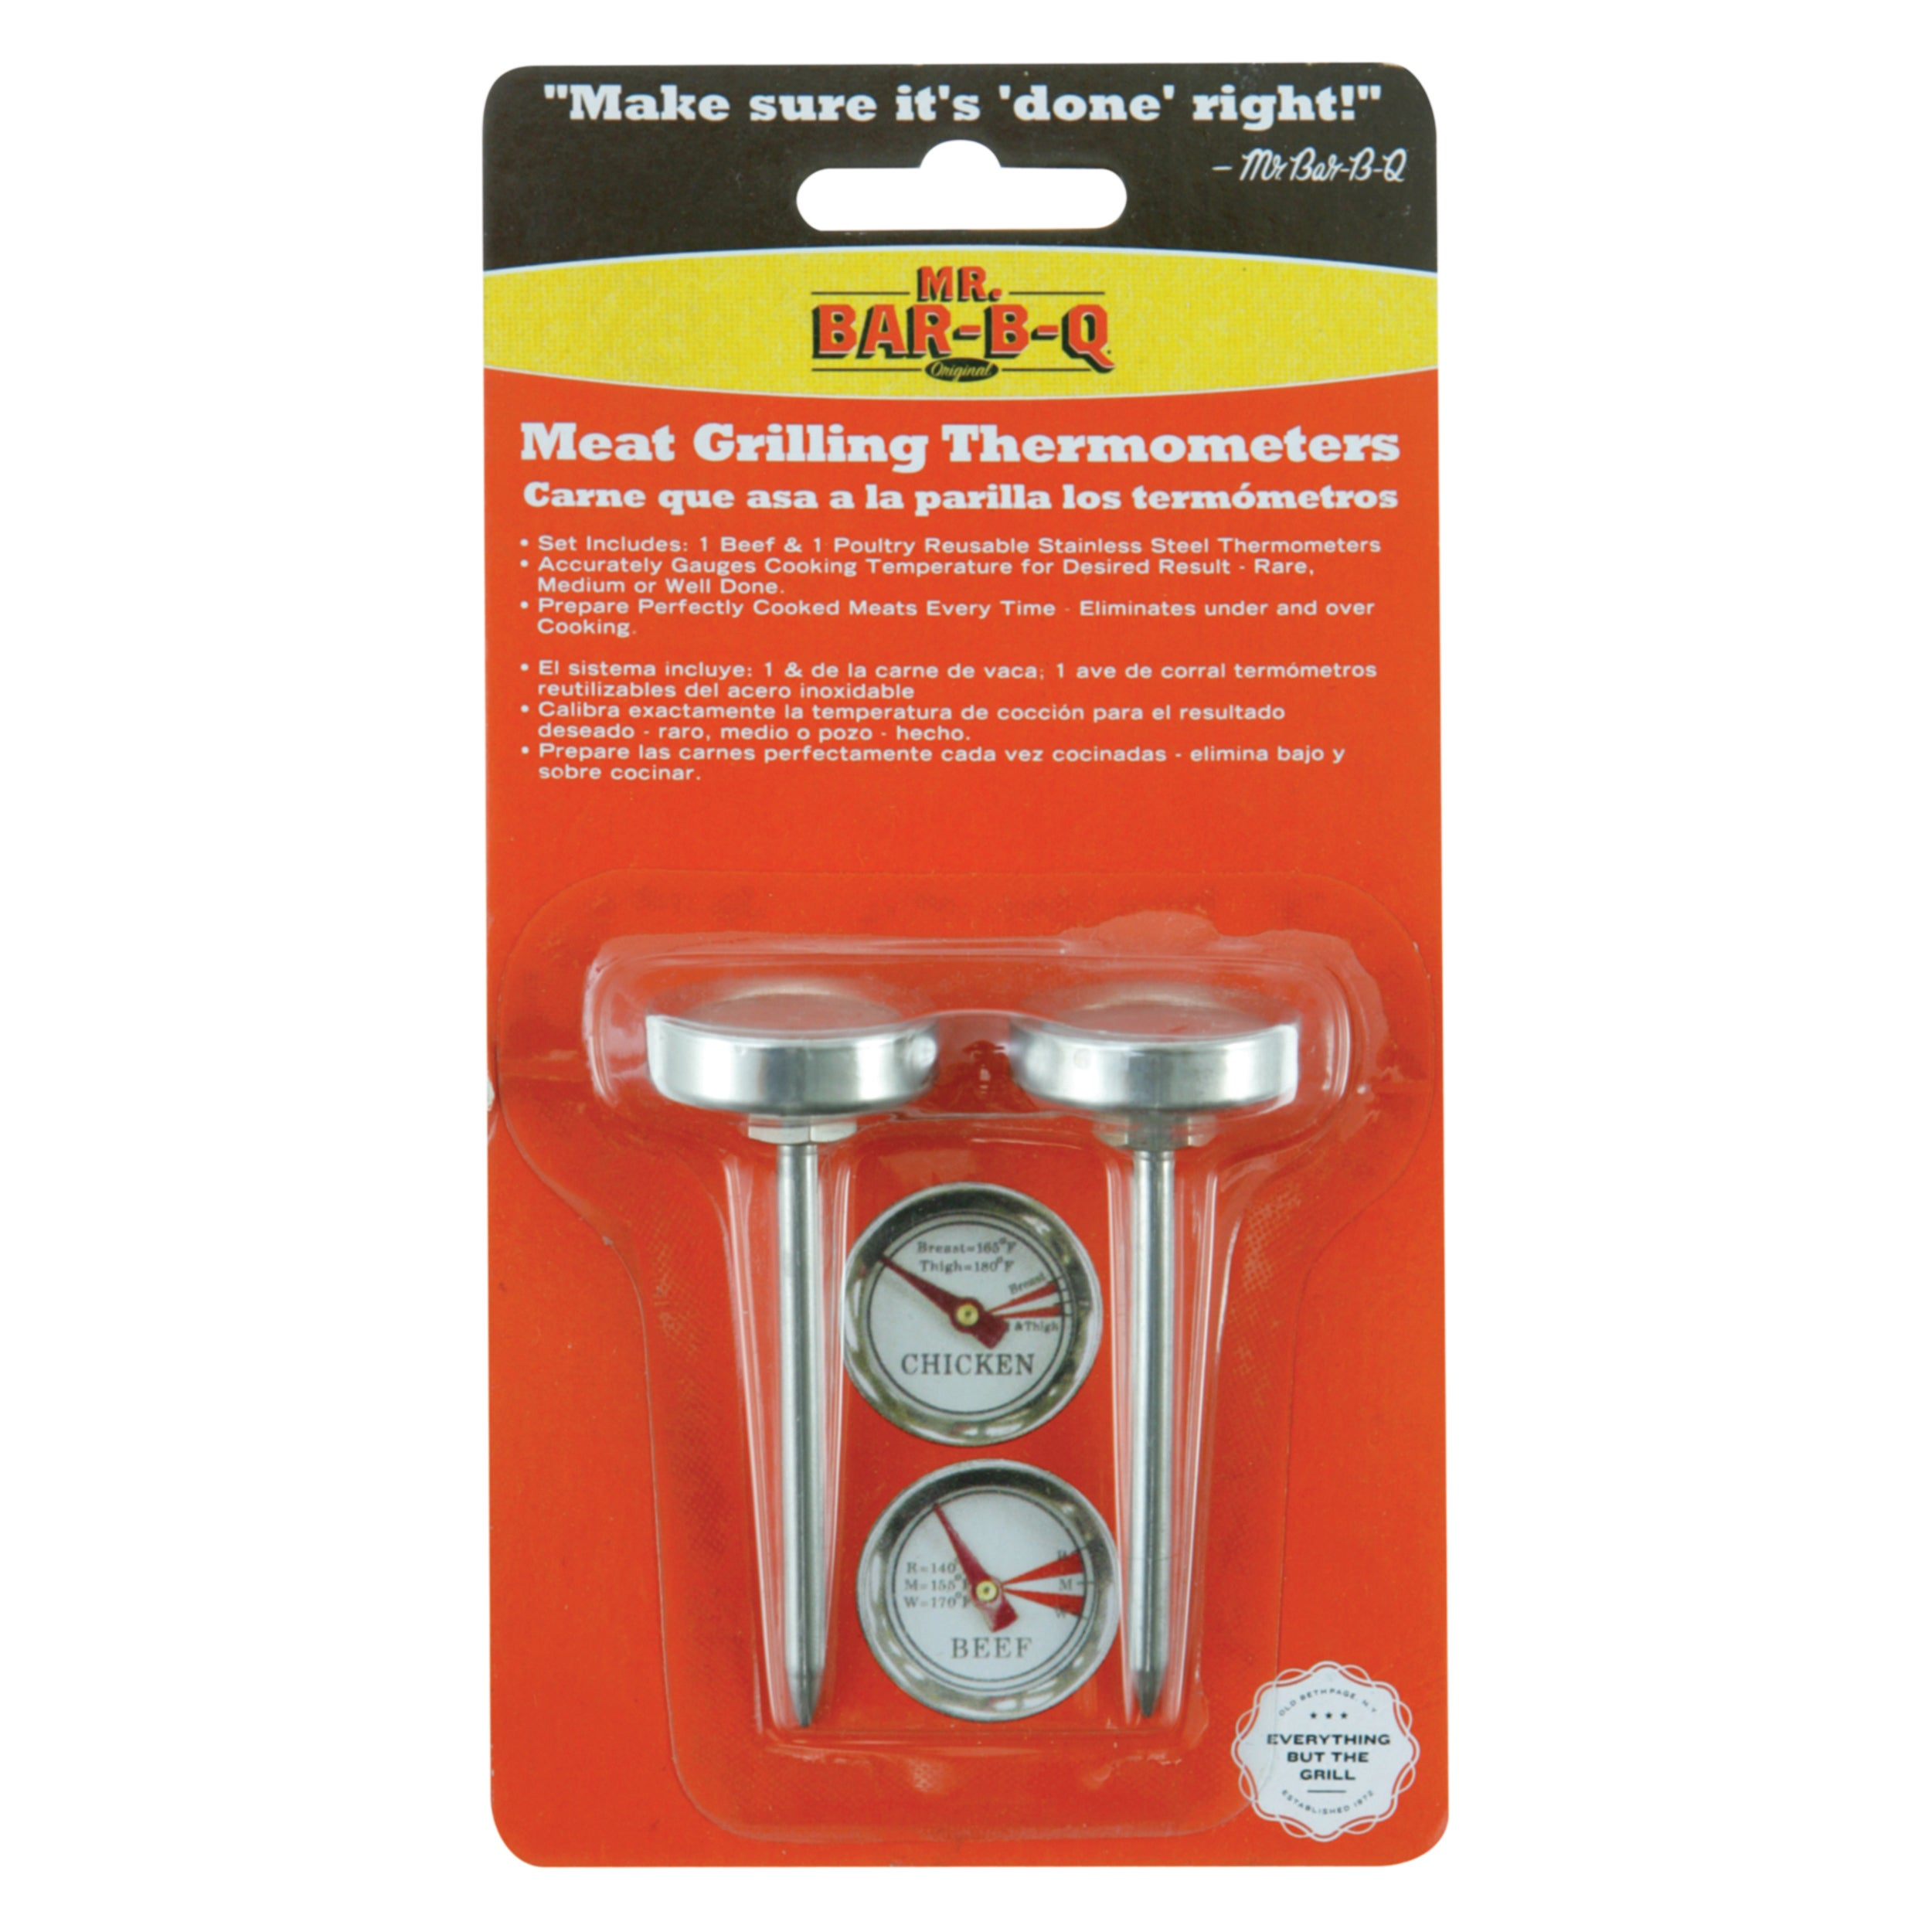 MR. BAR-B-Q Meat Thermometer 2-Pack (1), Silver stainless...